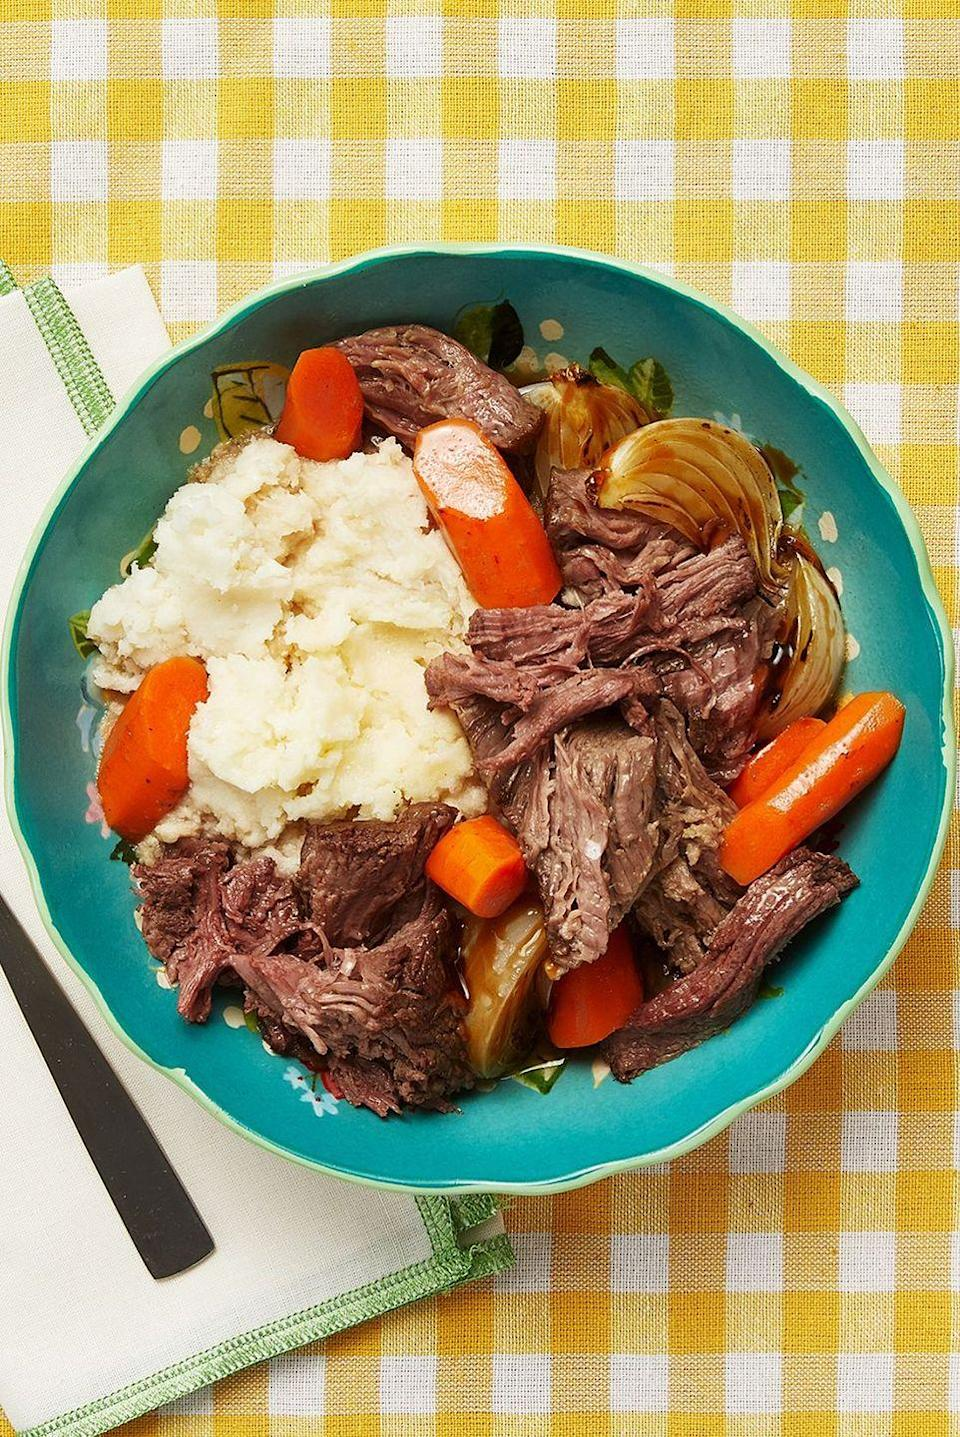 "<p>This pot roast is one of Ree's favorites, so it's officially mom-approved. Pro tip: Start with a nicely marbled piece of meat for the best results.</p><p><strong><a href=""https://www.thepioneerwoman.com/food-cooking/recipes/a10342/pot-roast-recipe/"" rel=""nofollow noopener"" target=""_blank"" data-ylk=""slk:Get the recipe"" class=""link rapid-noclick-resp"">Get the recipe</a>.</strong></p><p><strong><a class=""link rapid-noclick-resp"" href=""https://go.redirectingat.com?id=74968X1596630&url=https%3A%2F%2Fwww.walmart.com%2Fsearch%2F%3Fquery%3Dcookware&sref=https%3A%2F%2Fwww.thepioneerwoman.com%2Ffood-cooking%2Fmeals-menus%2Fg35589850%2Fmothers-day-dinner-ideas%2F"" rel=""nofollow noopener"" target=""_blank"" data-ylk=""slk:SHOP COOKWARE"">SHOP COOKWARE</a></strong></p>"